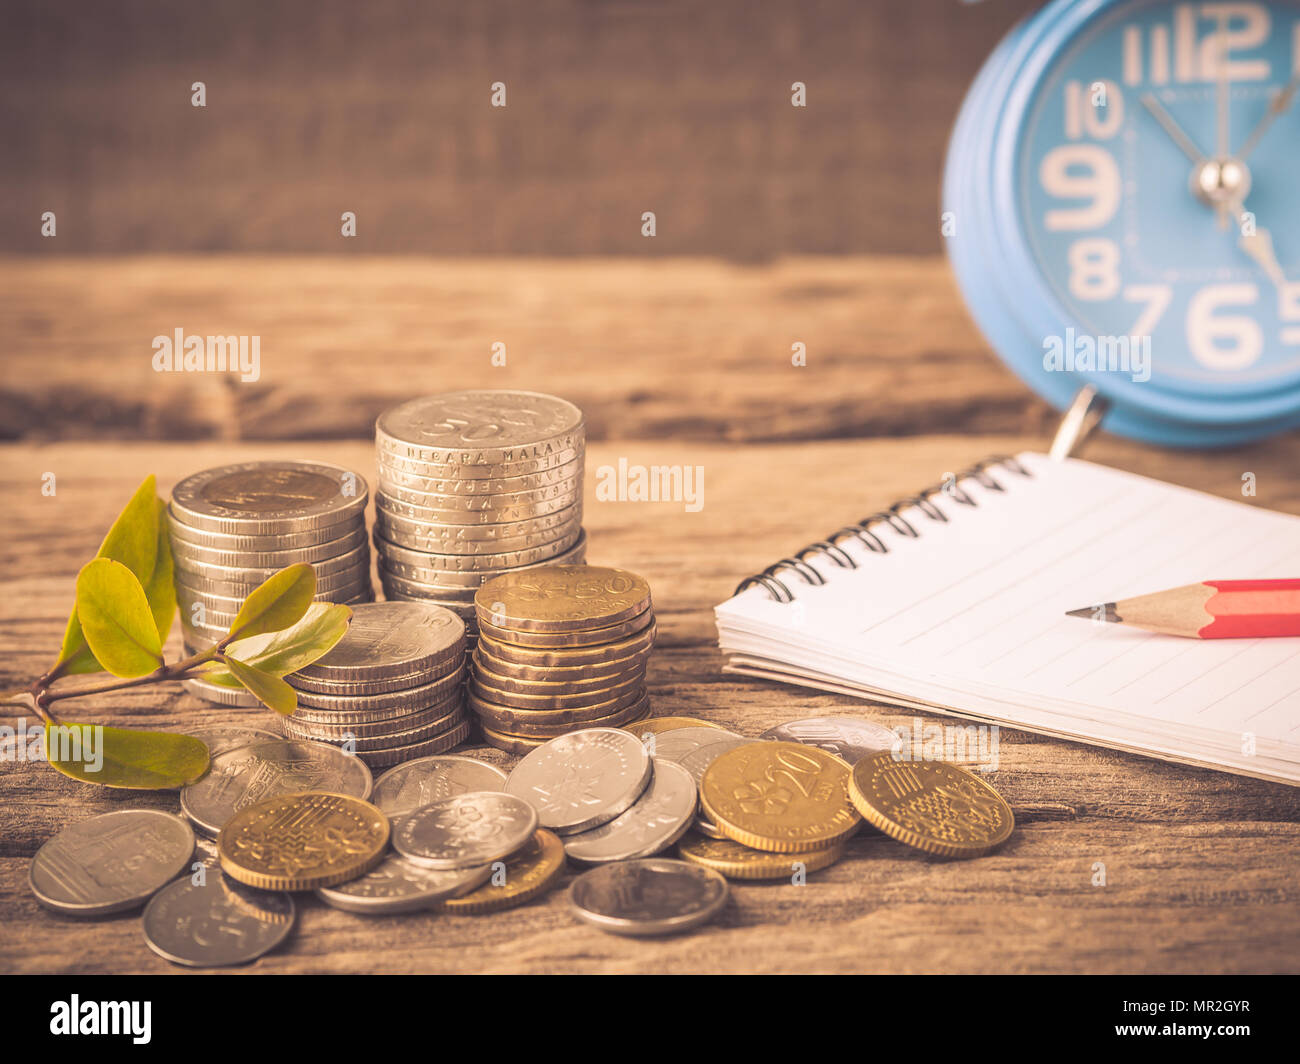 Vintage baby tree with coins, red pencil, noot book and alarm clock on old wooden background. Business financce and saving money concpt. - Stock Image